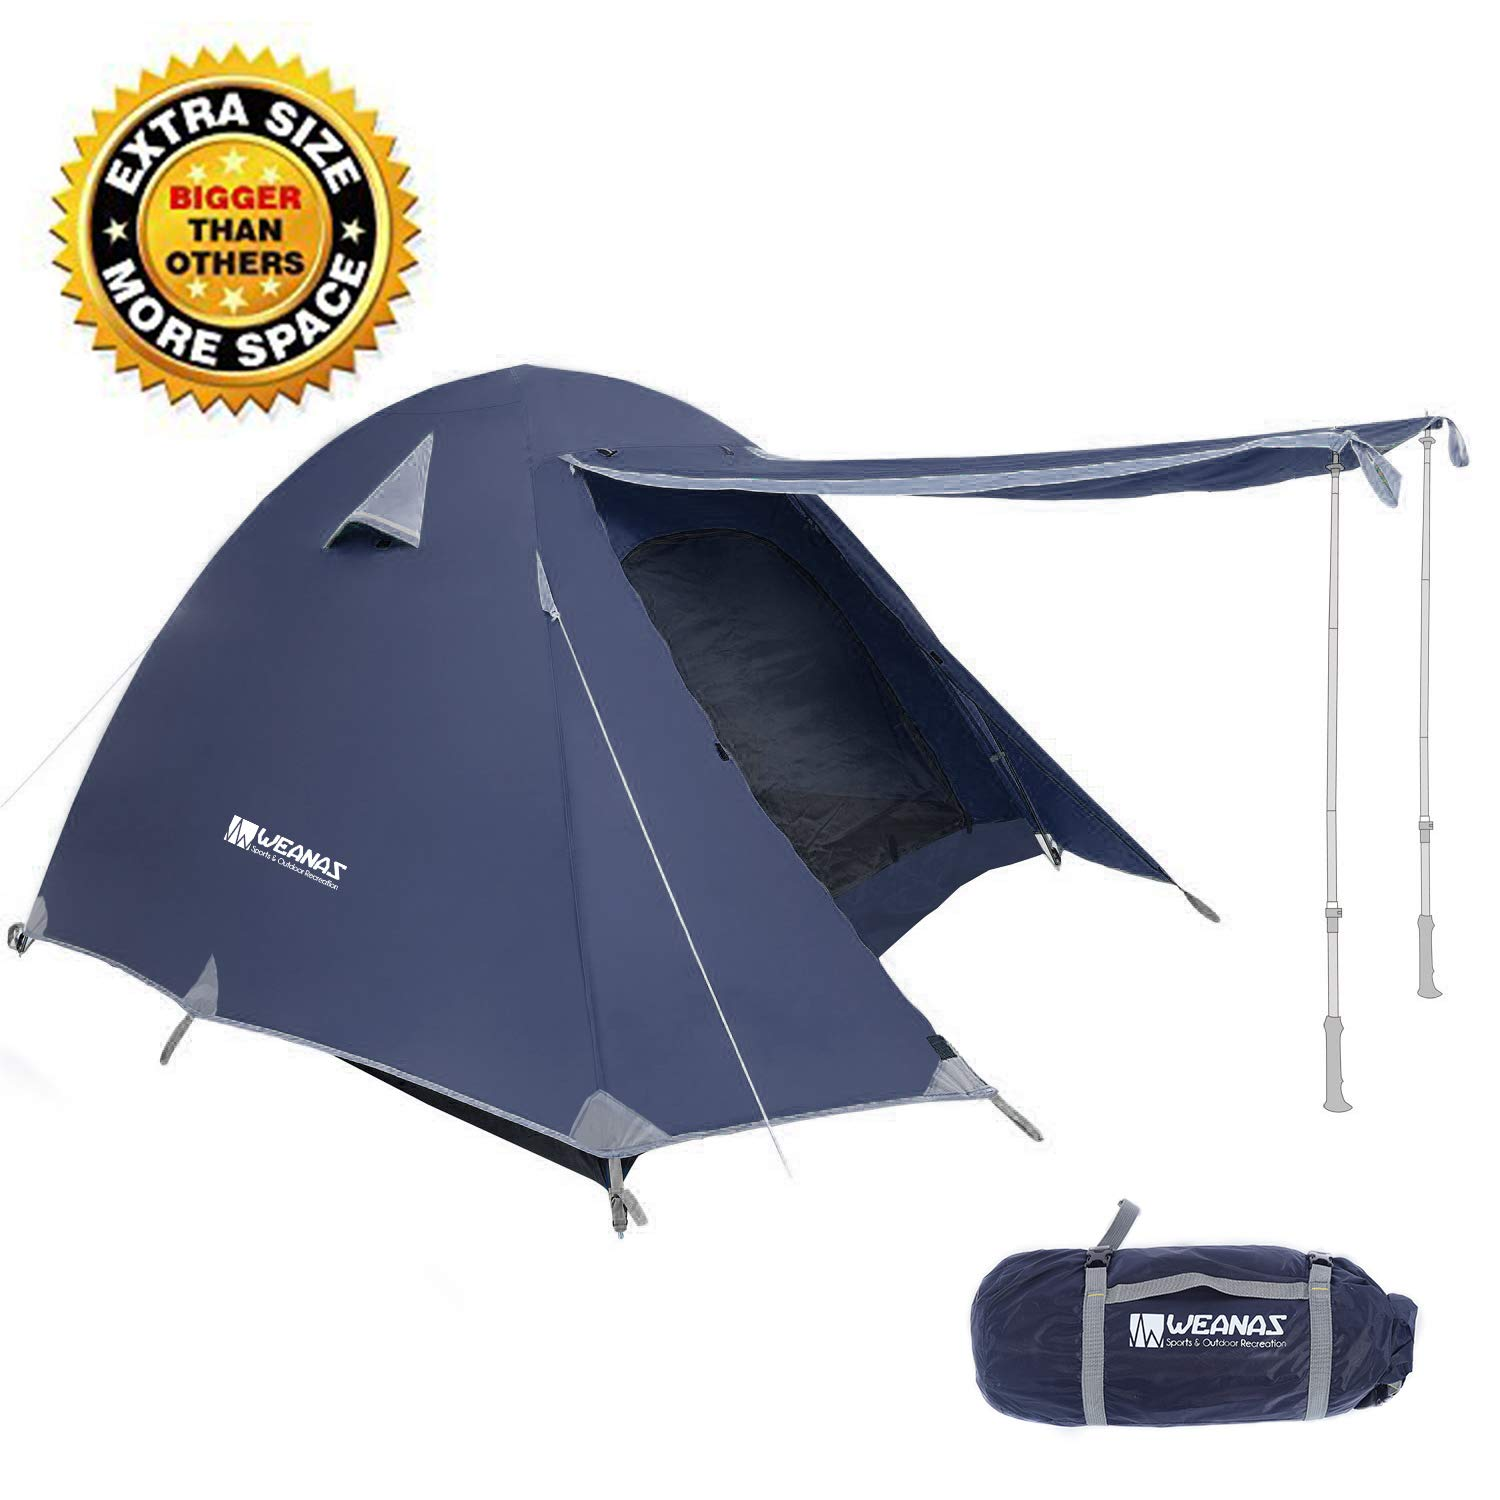 Weanas Professional Backpacking Tent 2 3 4 Person 3 Season Weatherproof Double Layer Large Space Aluminum Rod for Outdoor Family Camping Hunting Hiking Adventure Travel (Extra Size Navy, 1-2 Person)